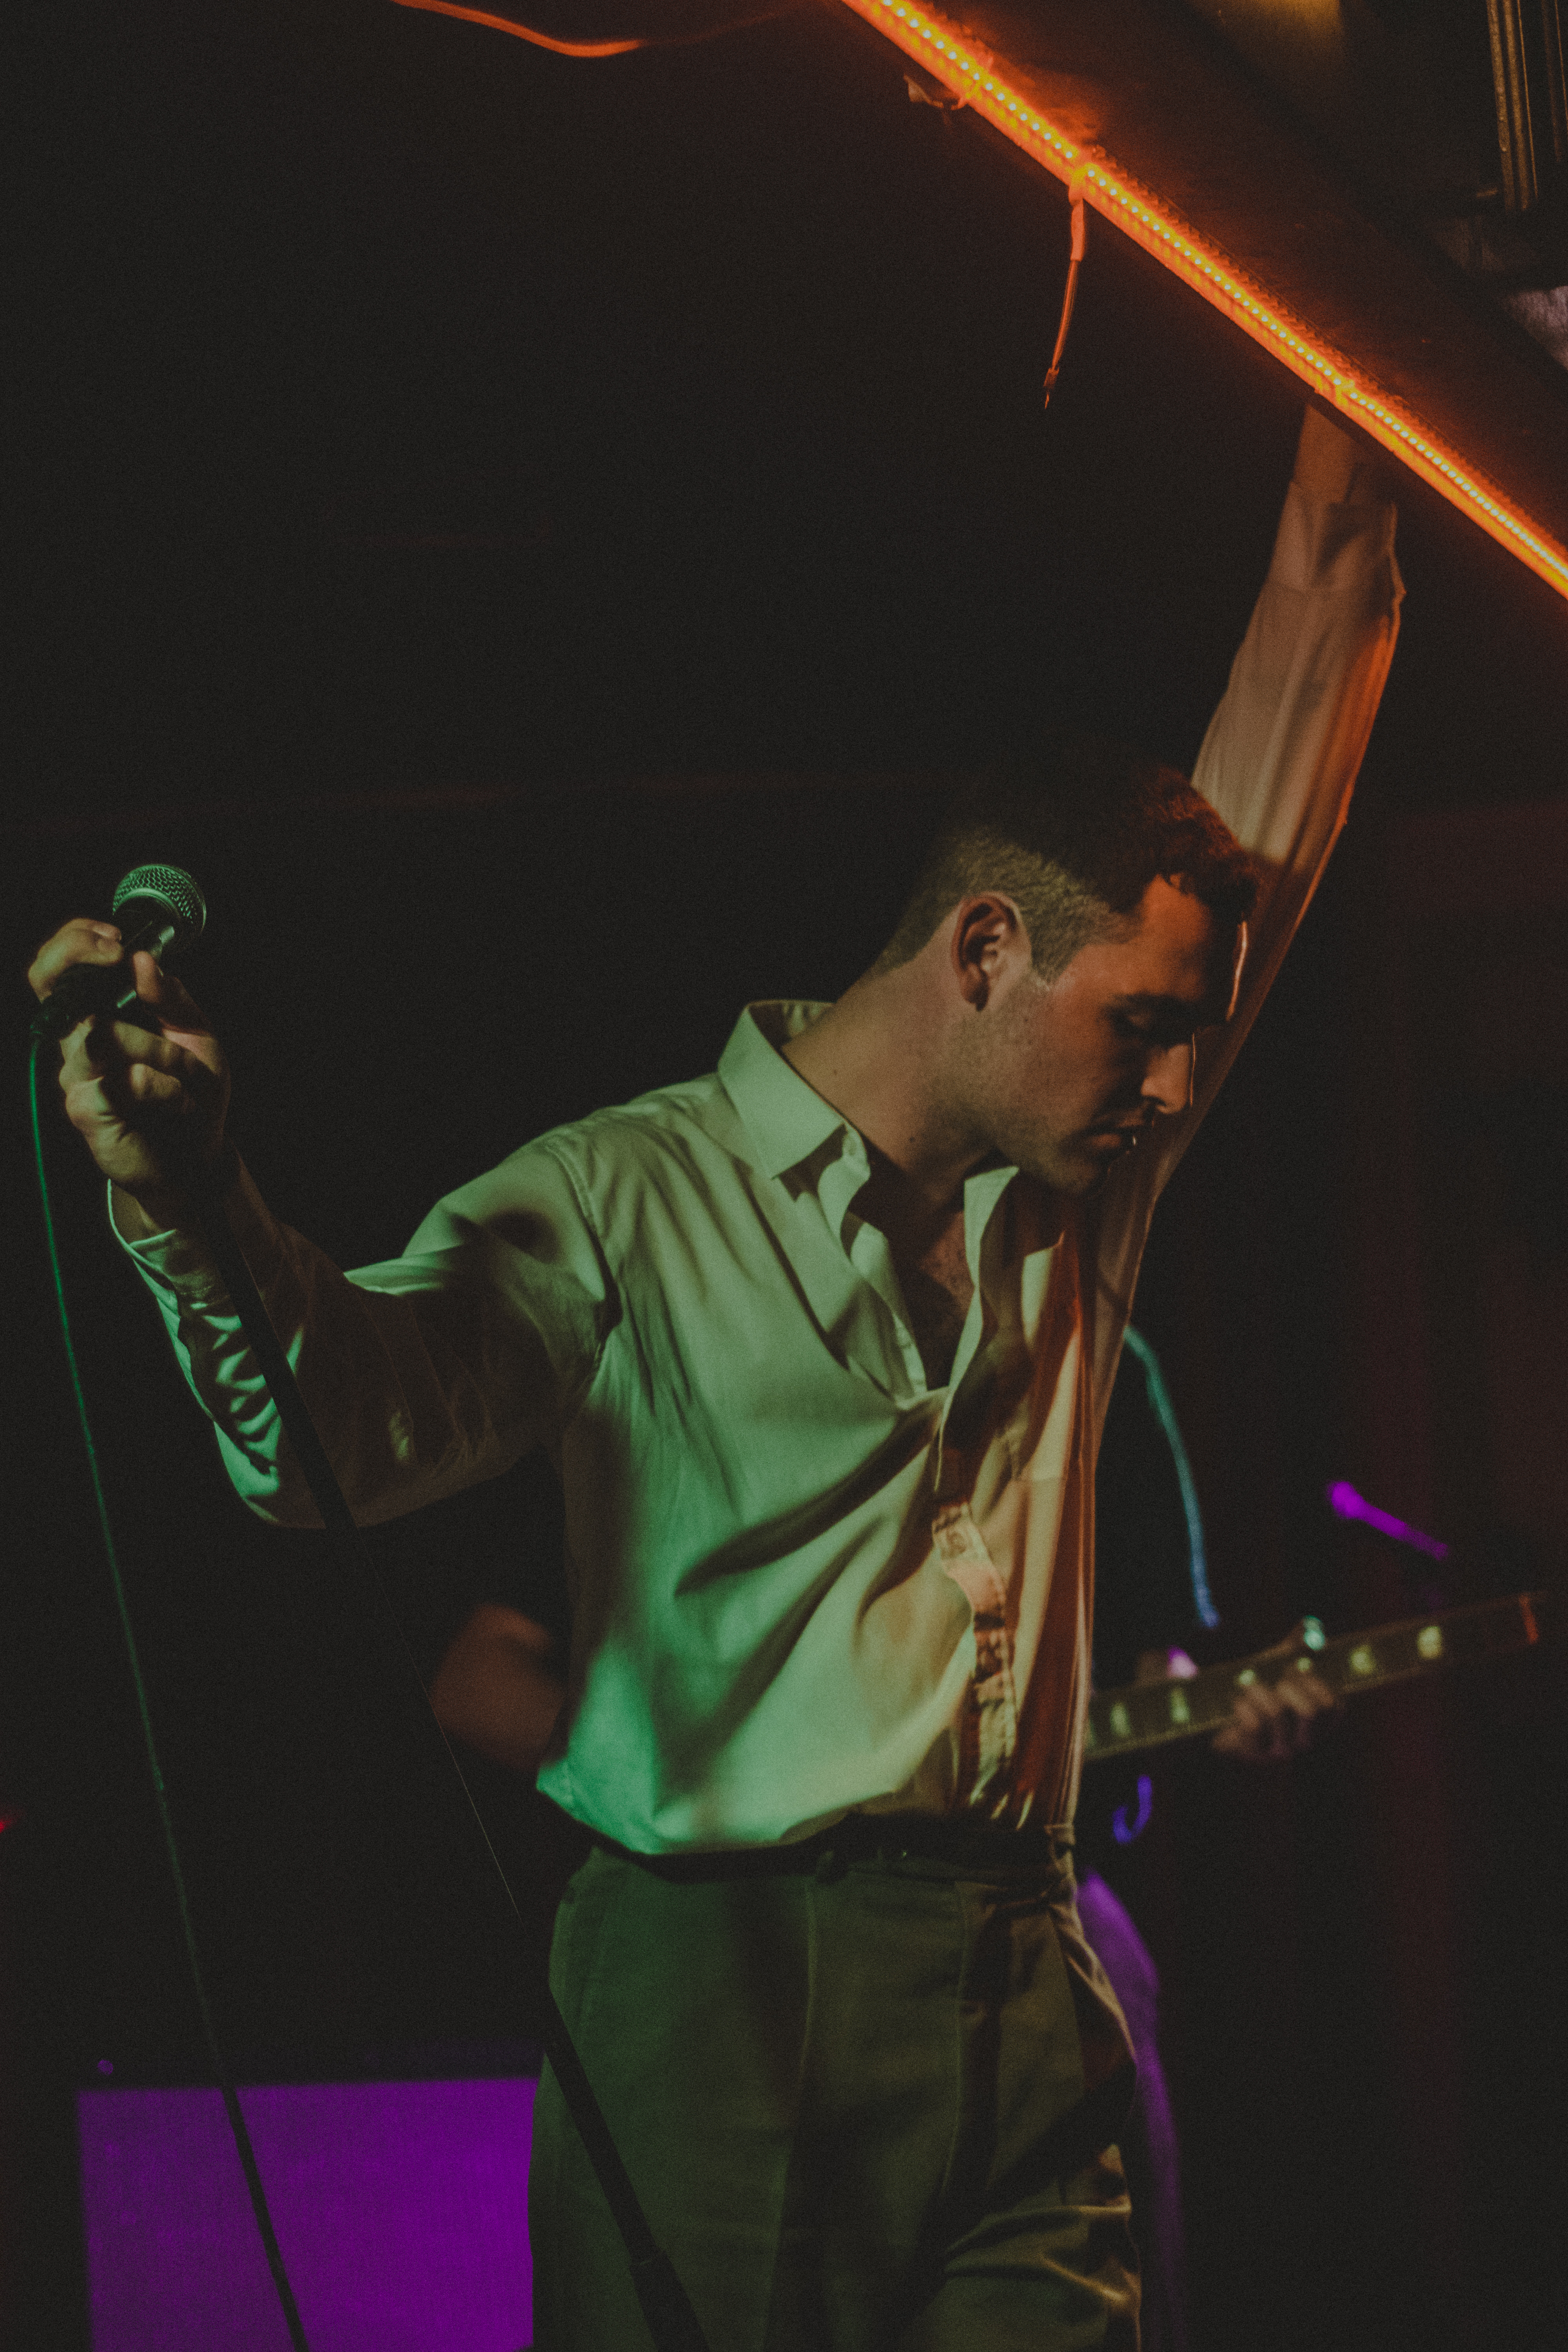 The Murder Capital frontman James McGovern, during the band's album launch show at Crane Lane. Photo by Ryan O'Riordan.